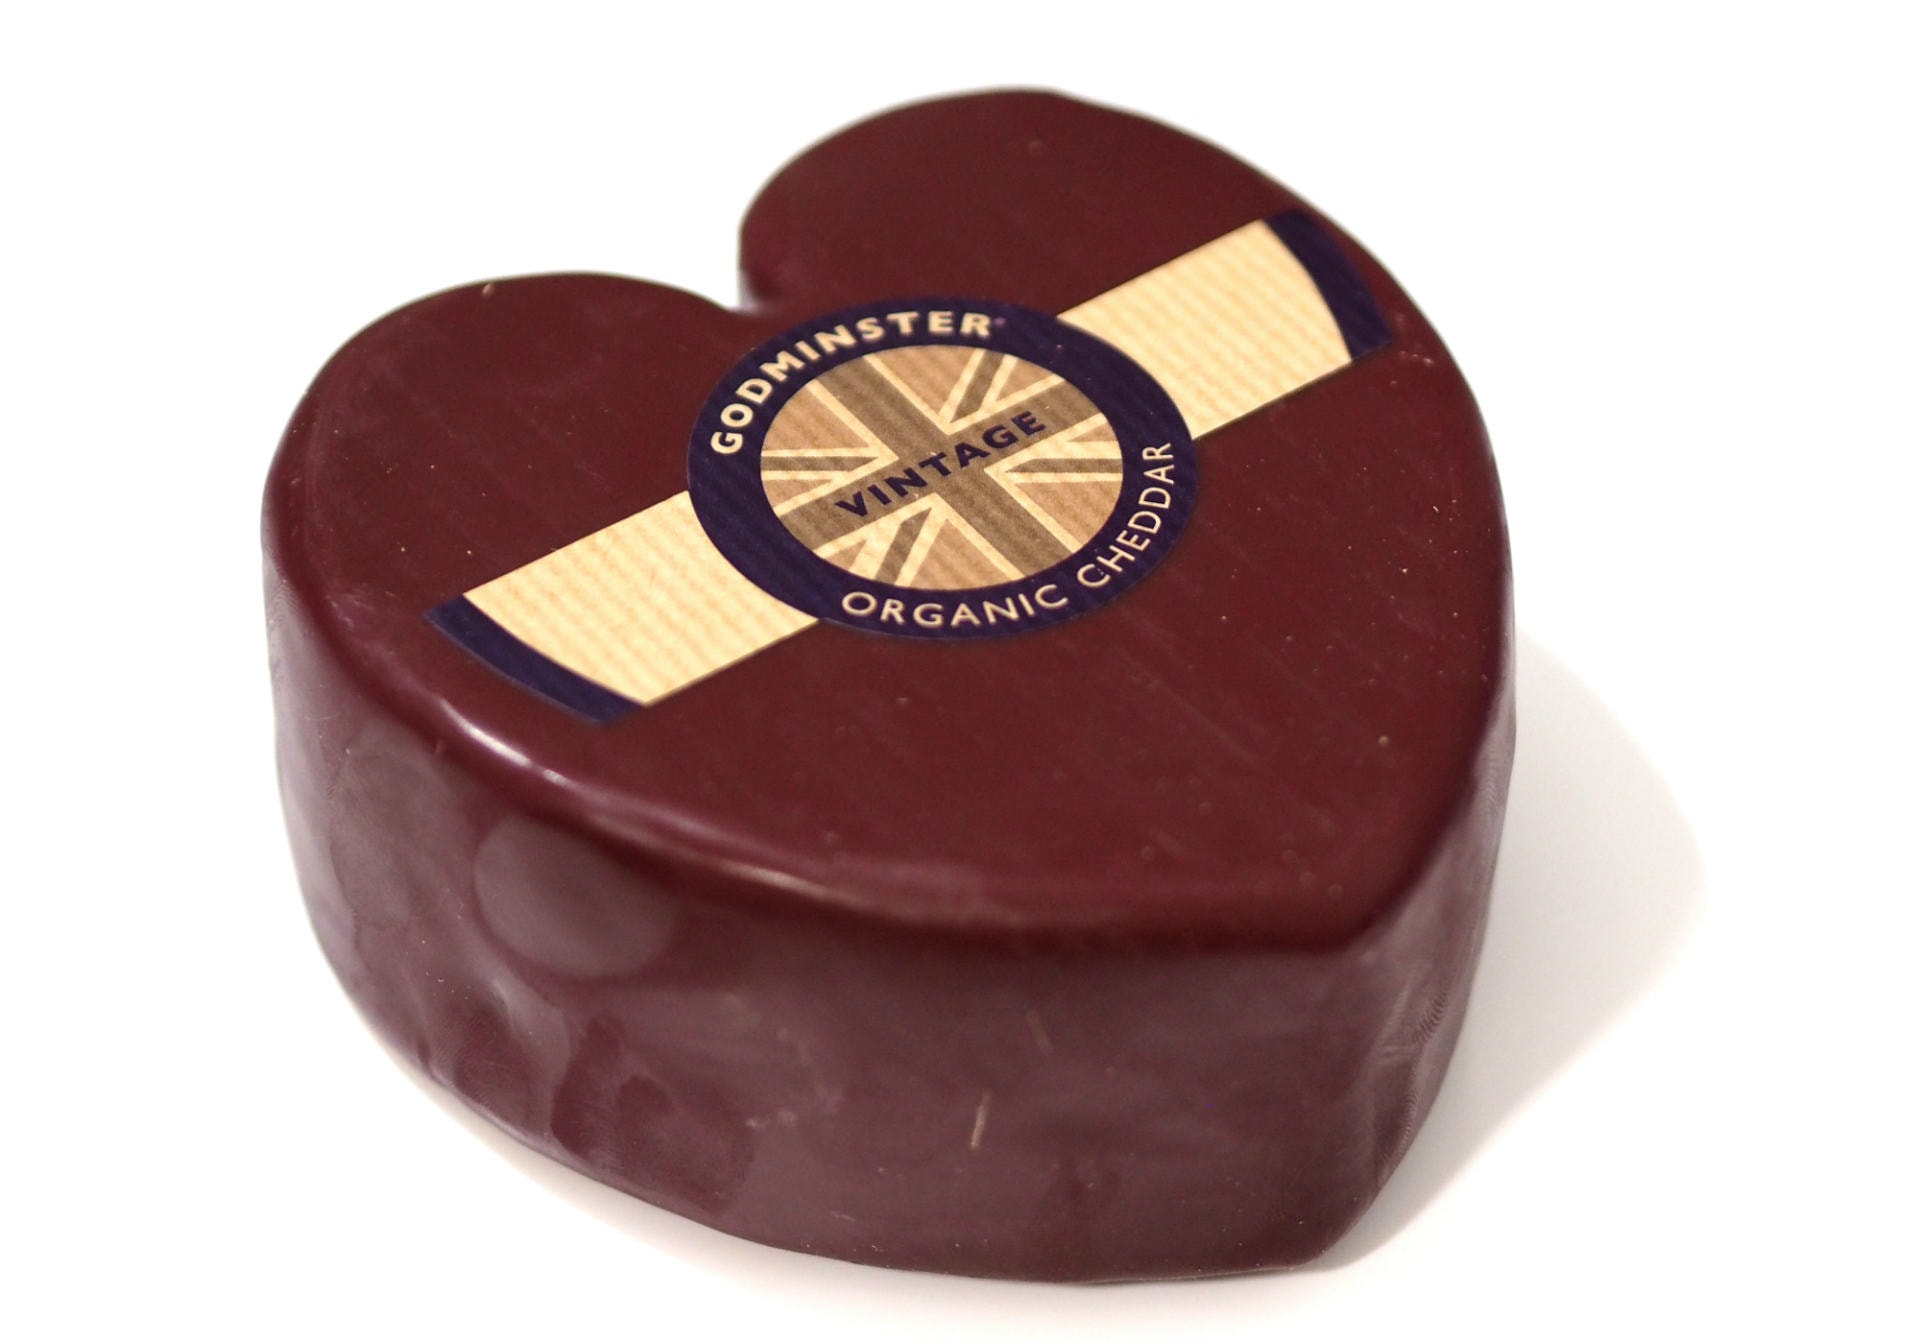 Godminster Heart Shaped Vintage Organic Cheddar